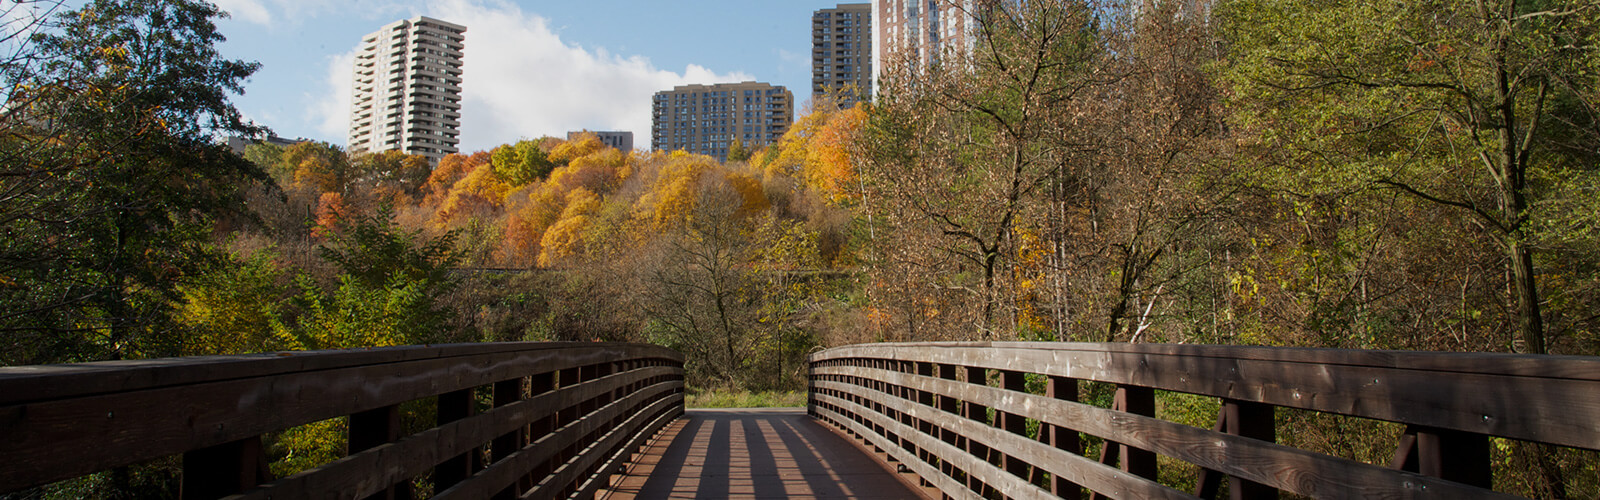 A wood pedestrian bridge crossed from the foreground toward a forested area with fall trees. Several apartment buildings in the background look down on the valley.